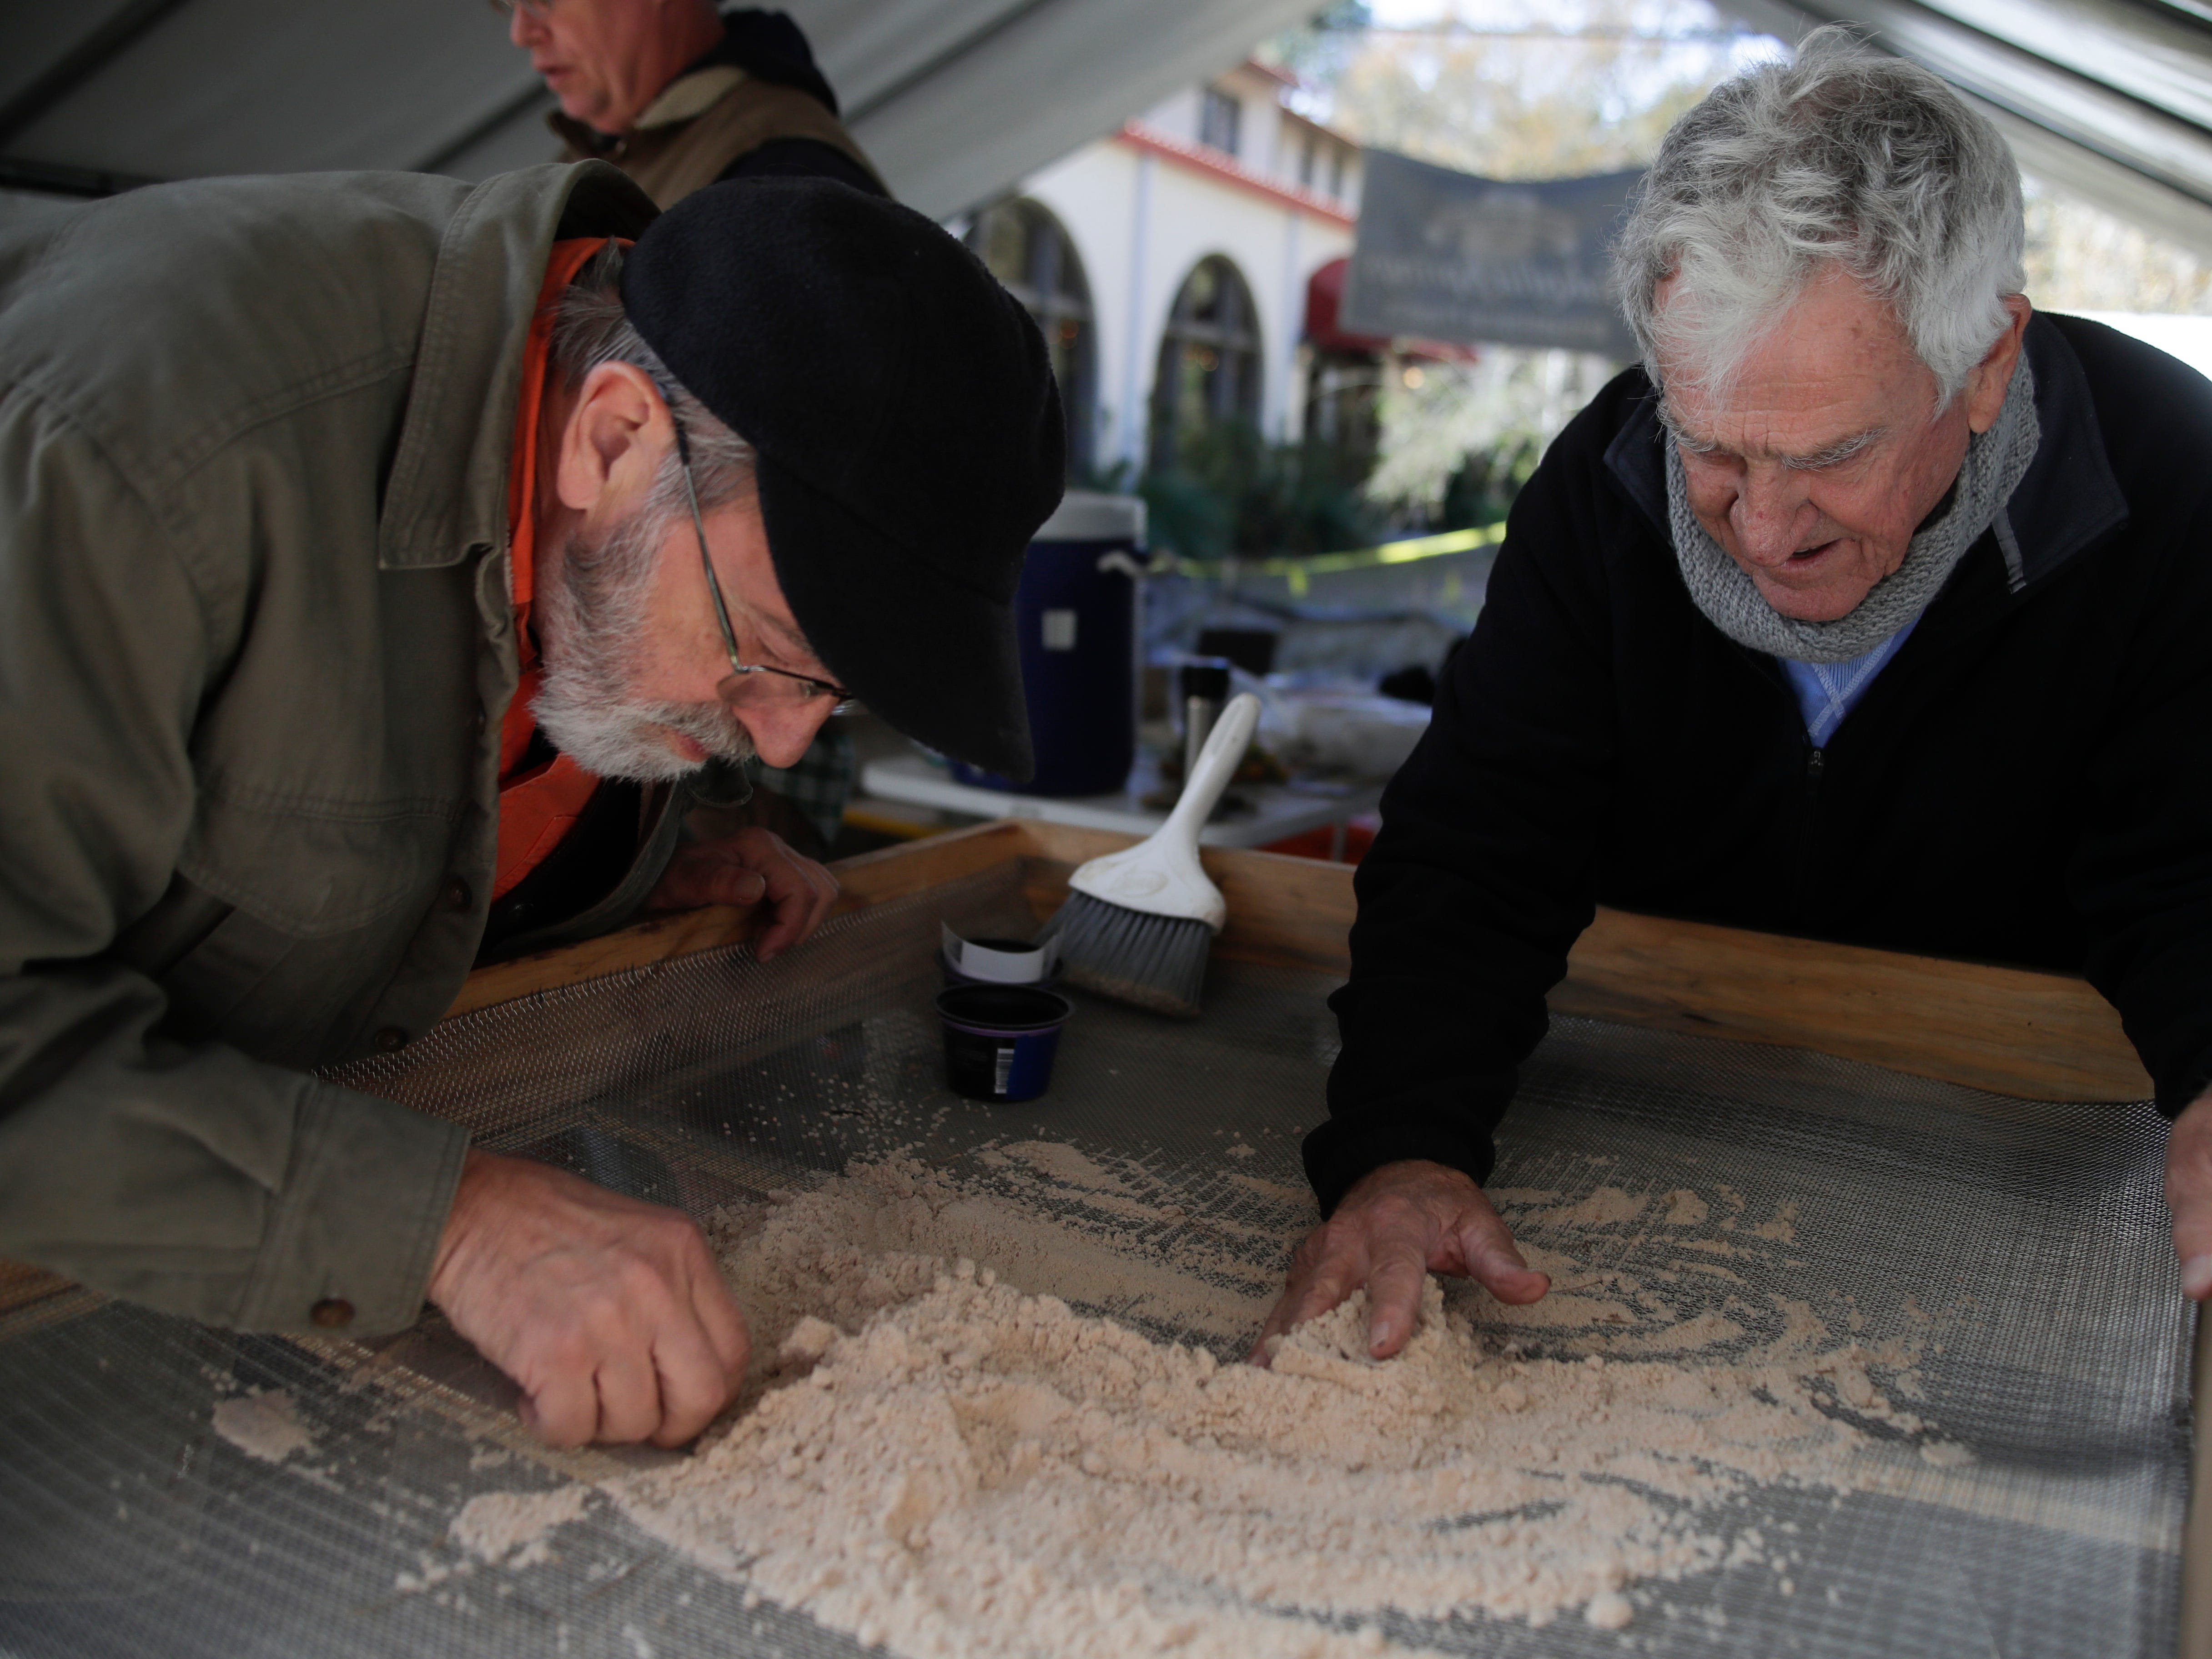 Aucilla Research Institute archaeologist Gerald Brinkley, left, and volunteer screener Ken Beattie look for artifacts in sand from the pit at Wakullla Springs State Park Thursday, Nov. 29, 2018.